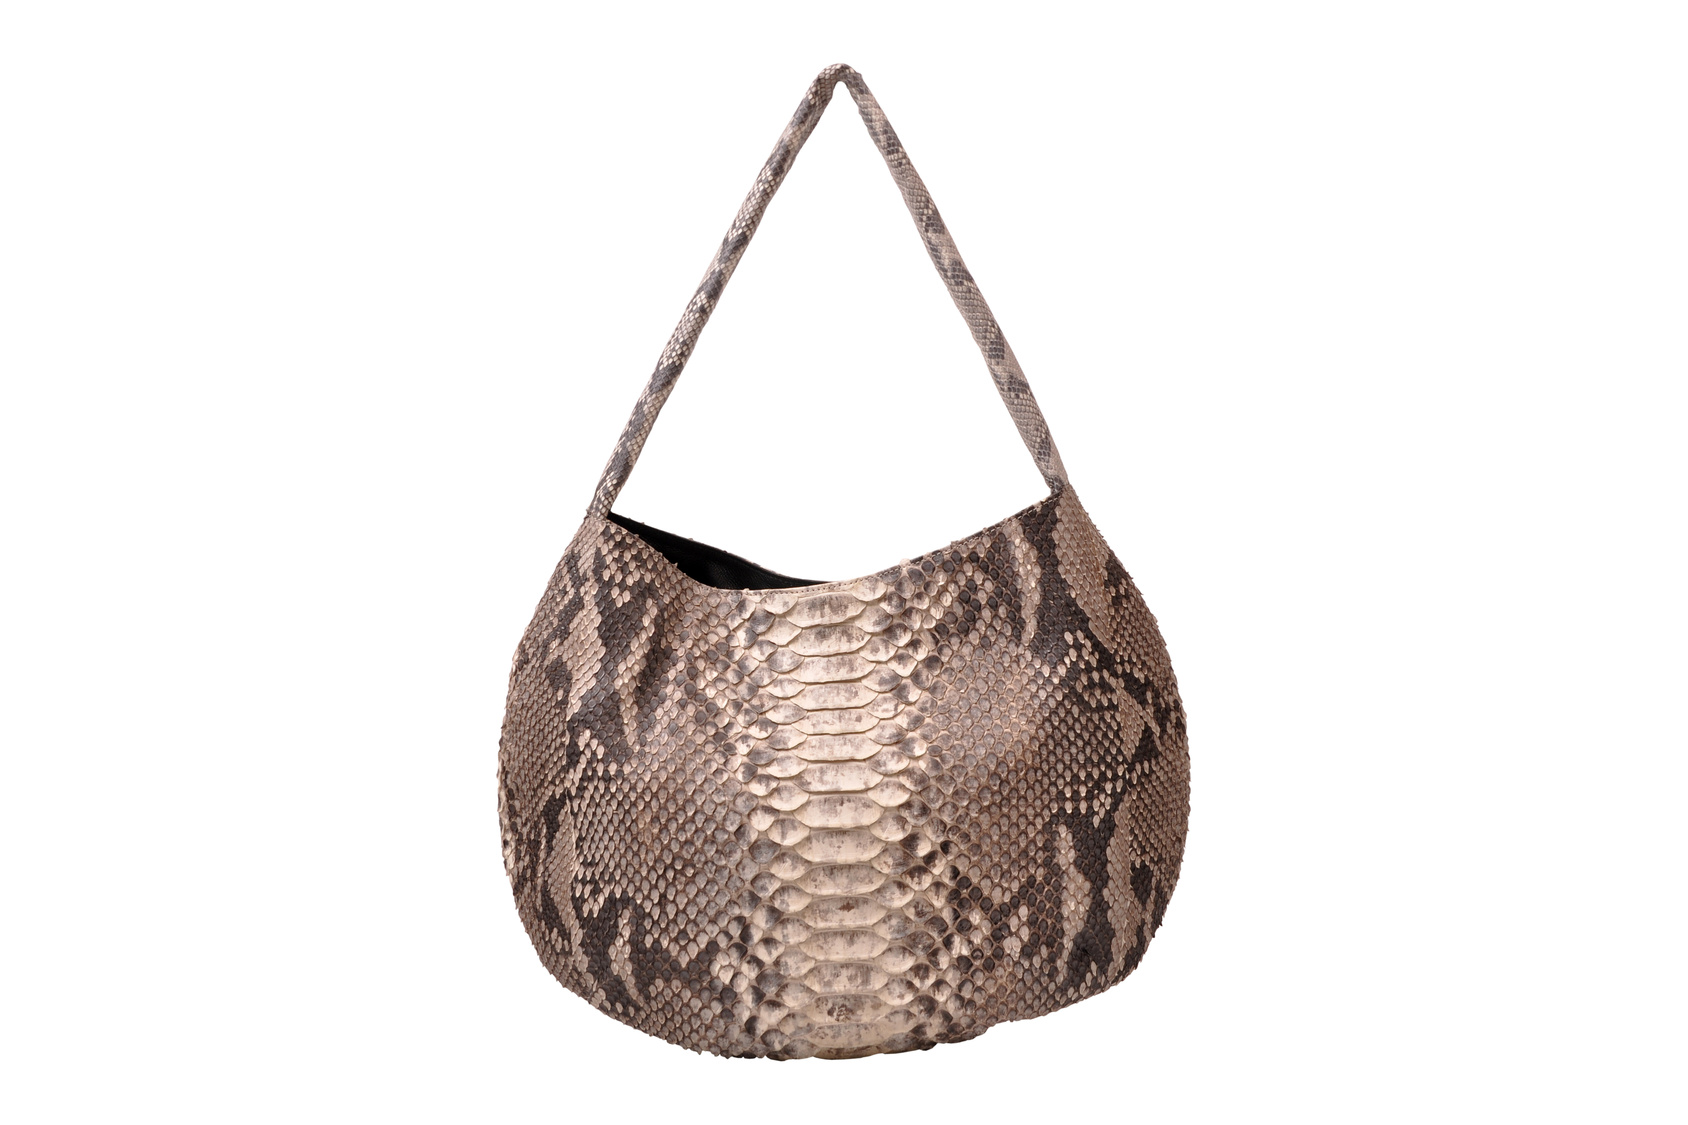 Natural python scale patterns create a truly one of a kind handbag.